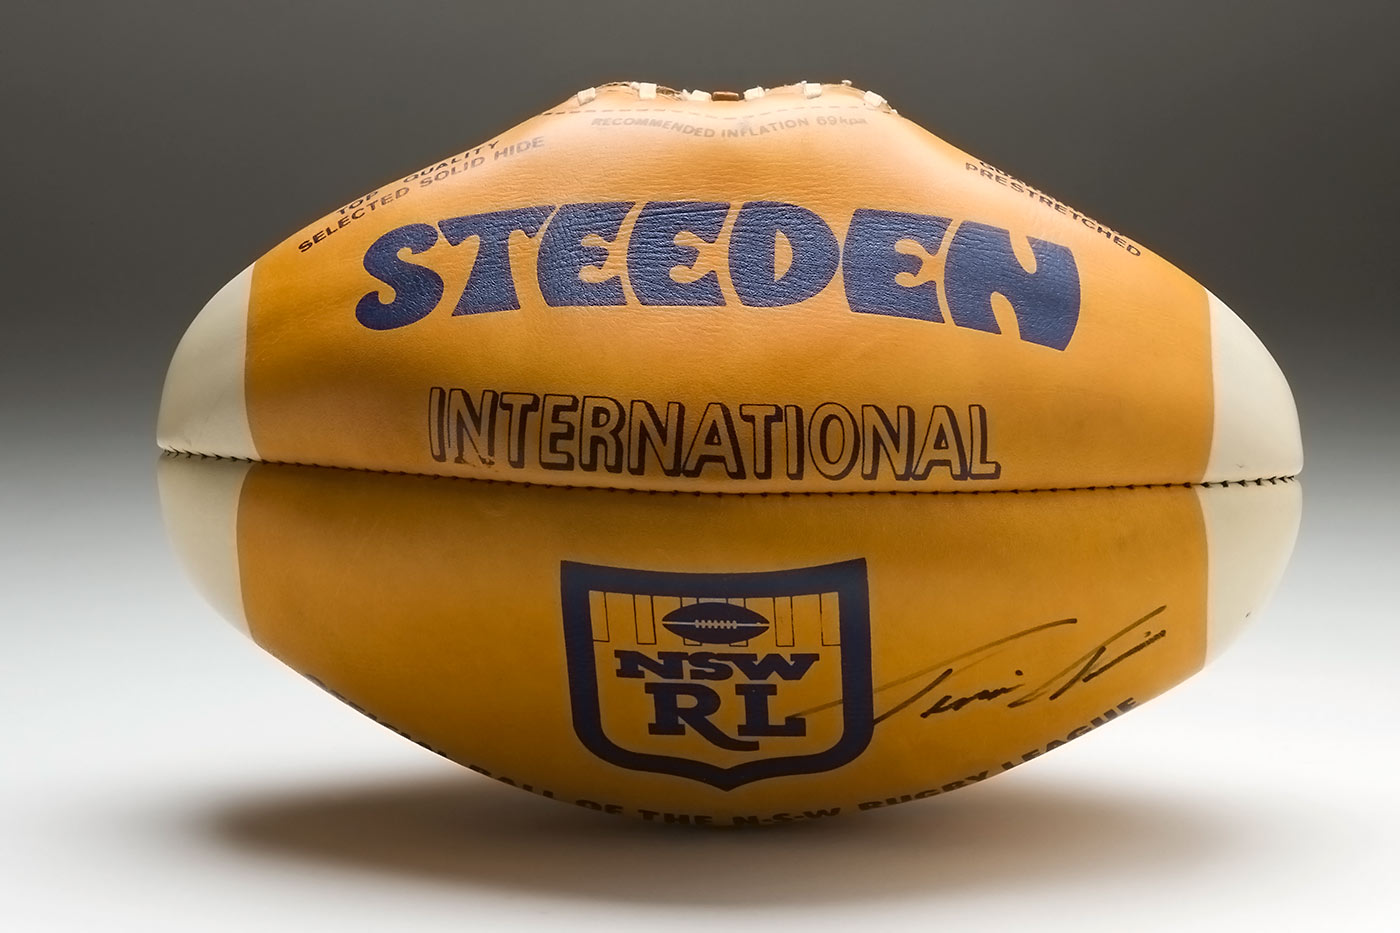 Steeden brand rugby ball with a NSWRL logo and a handwritten signature bottom right. - click to view larger image